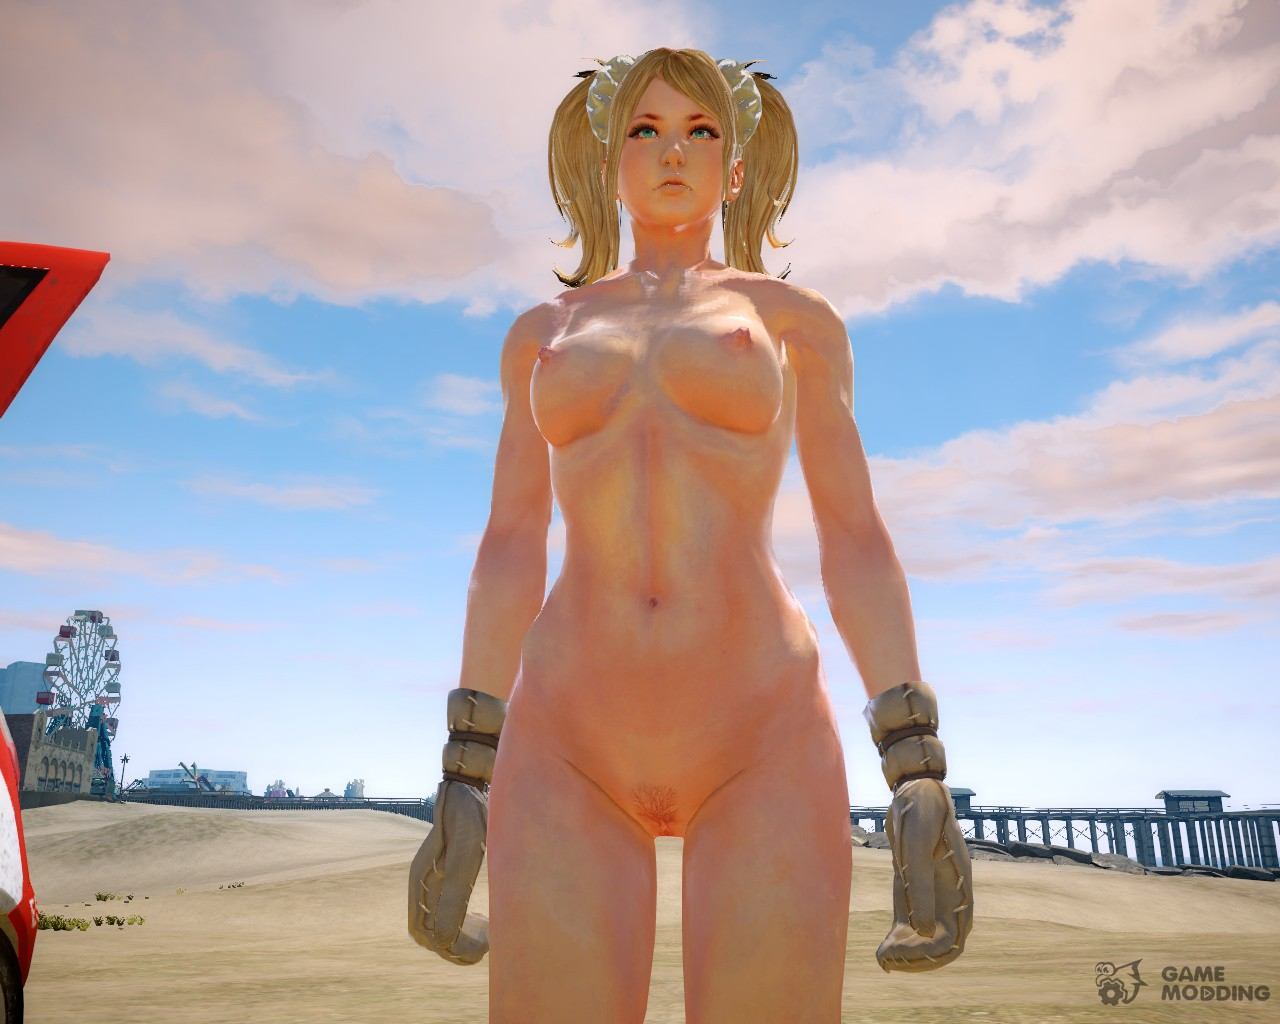 hot-grand-theft-auto-girls-nude-nasty-sex-faces-videos